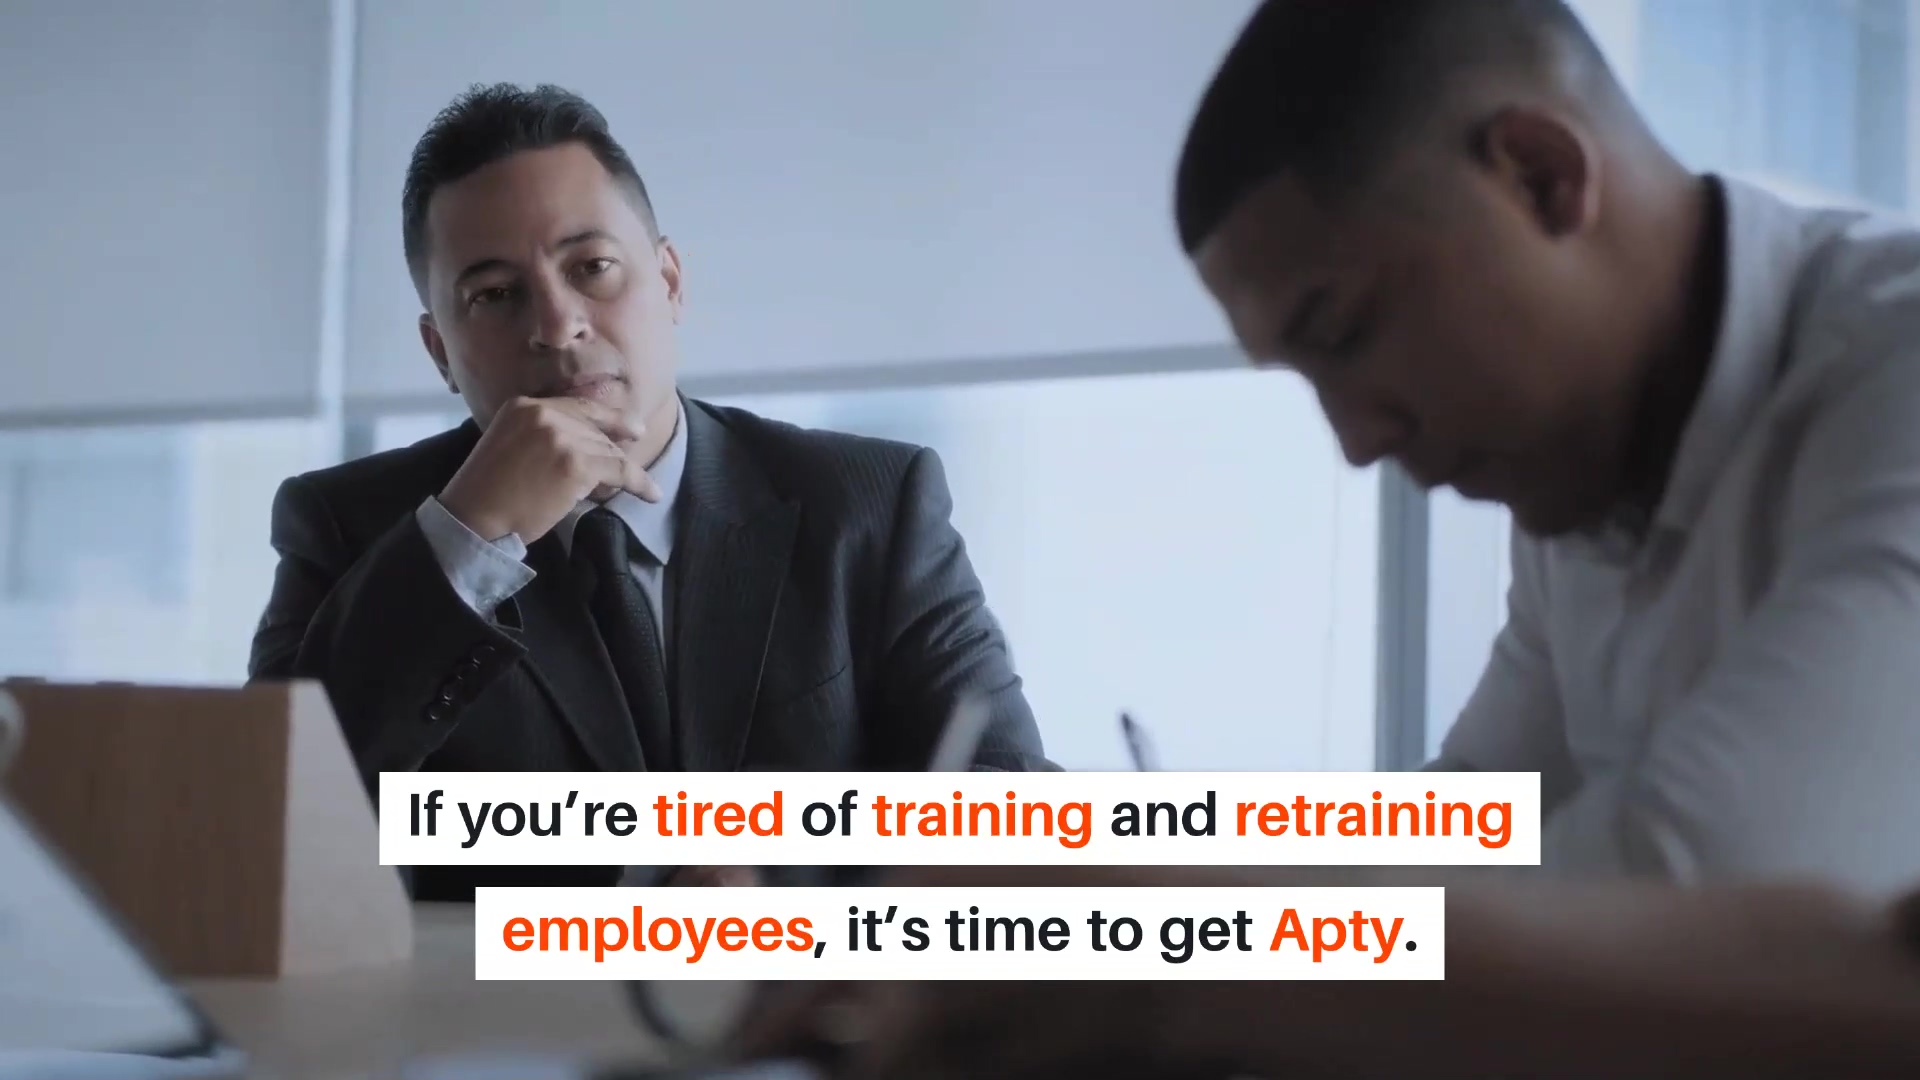 Training and retraining employees